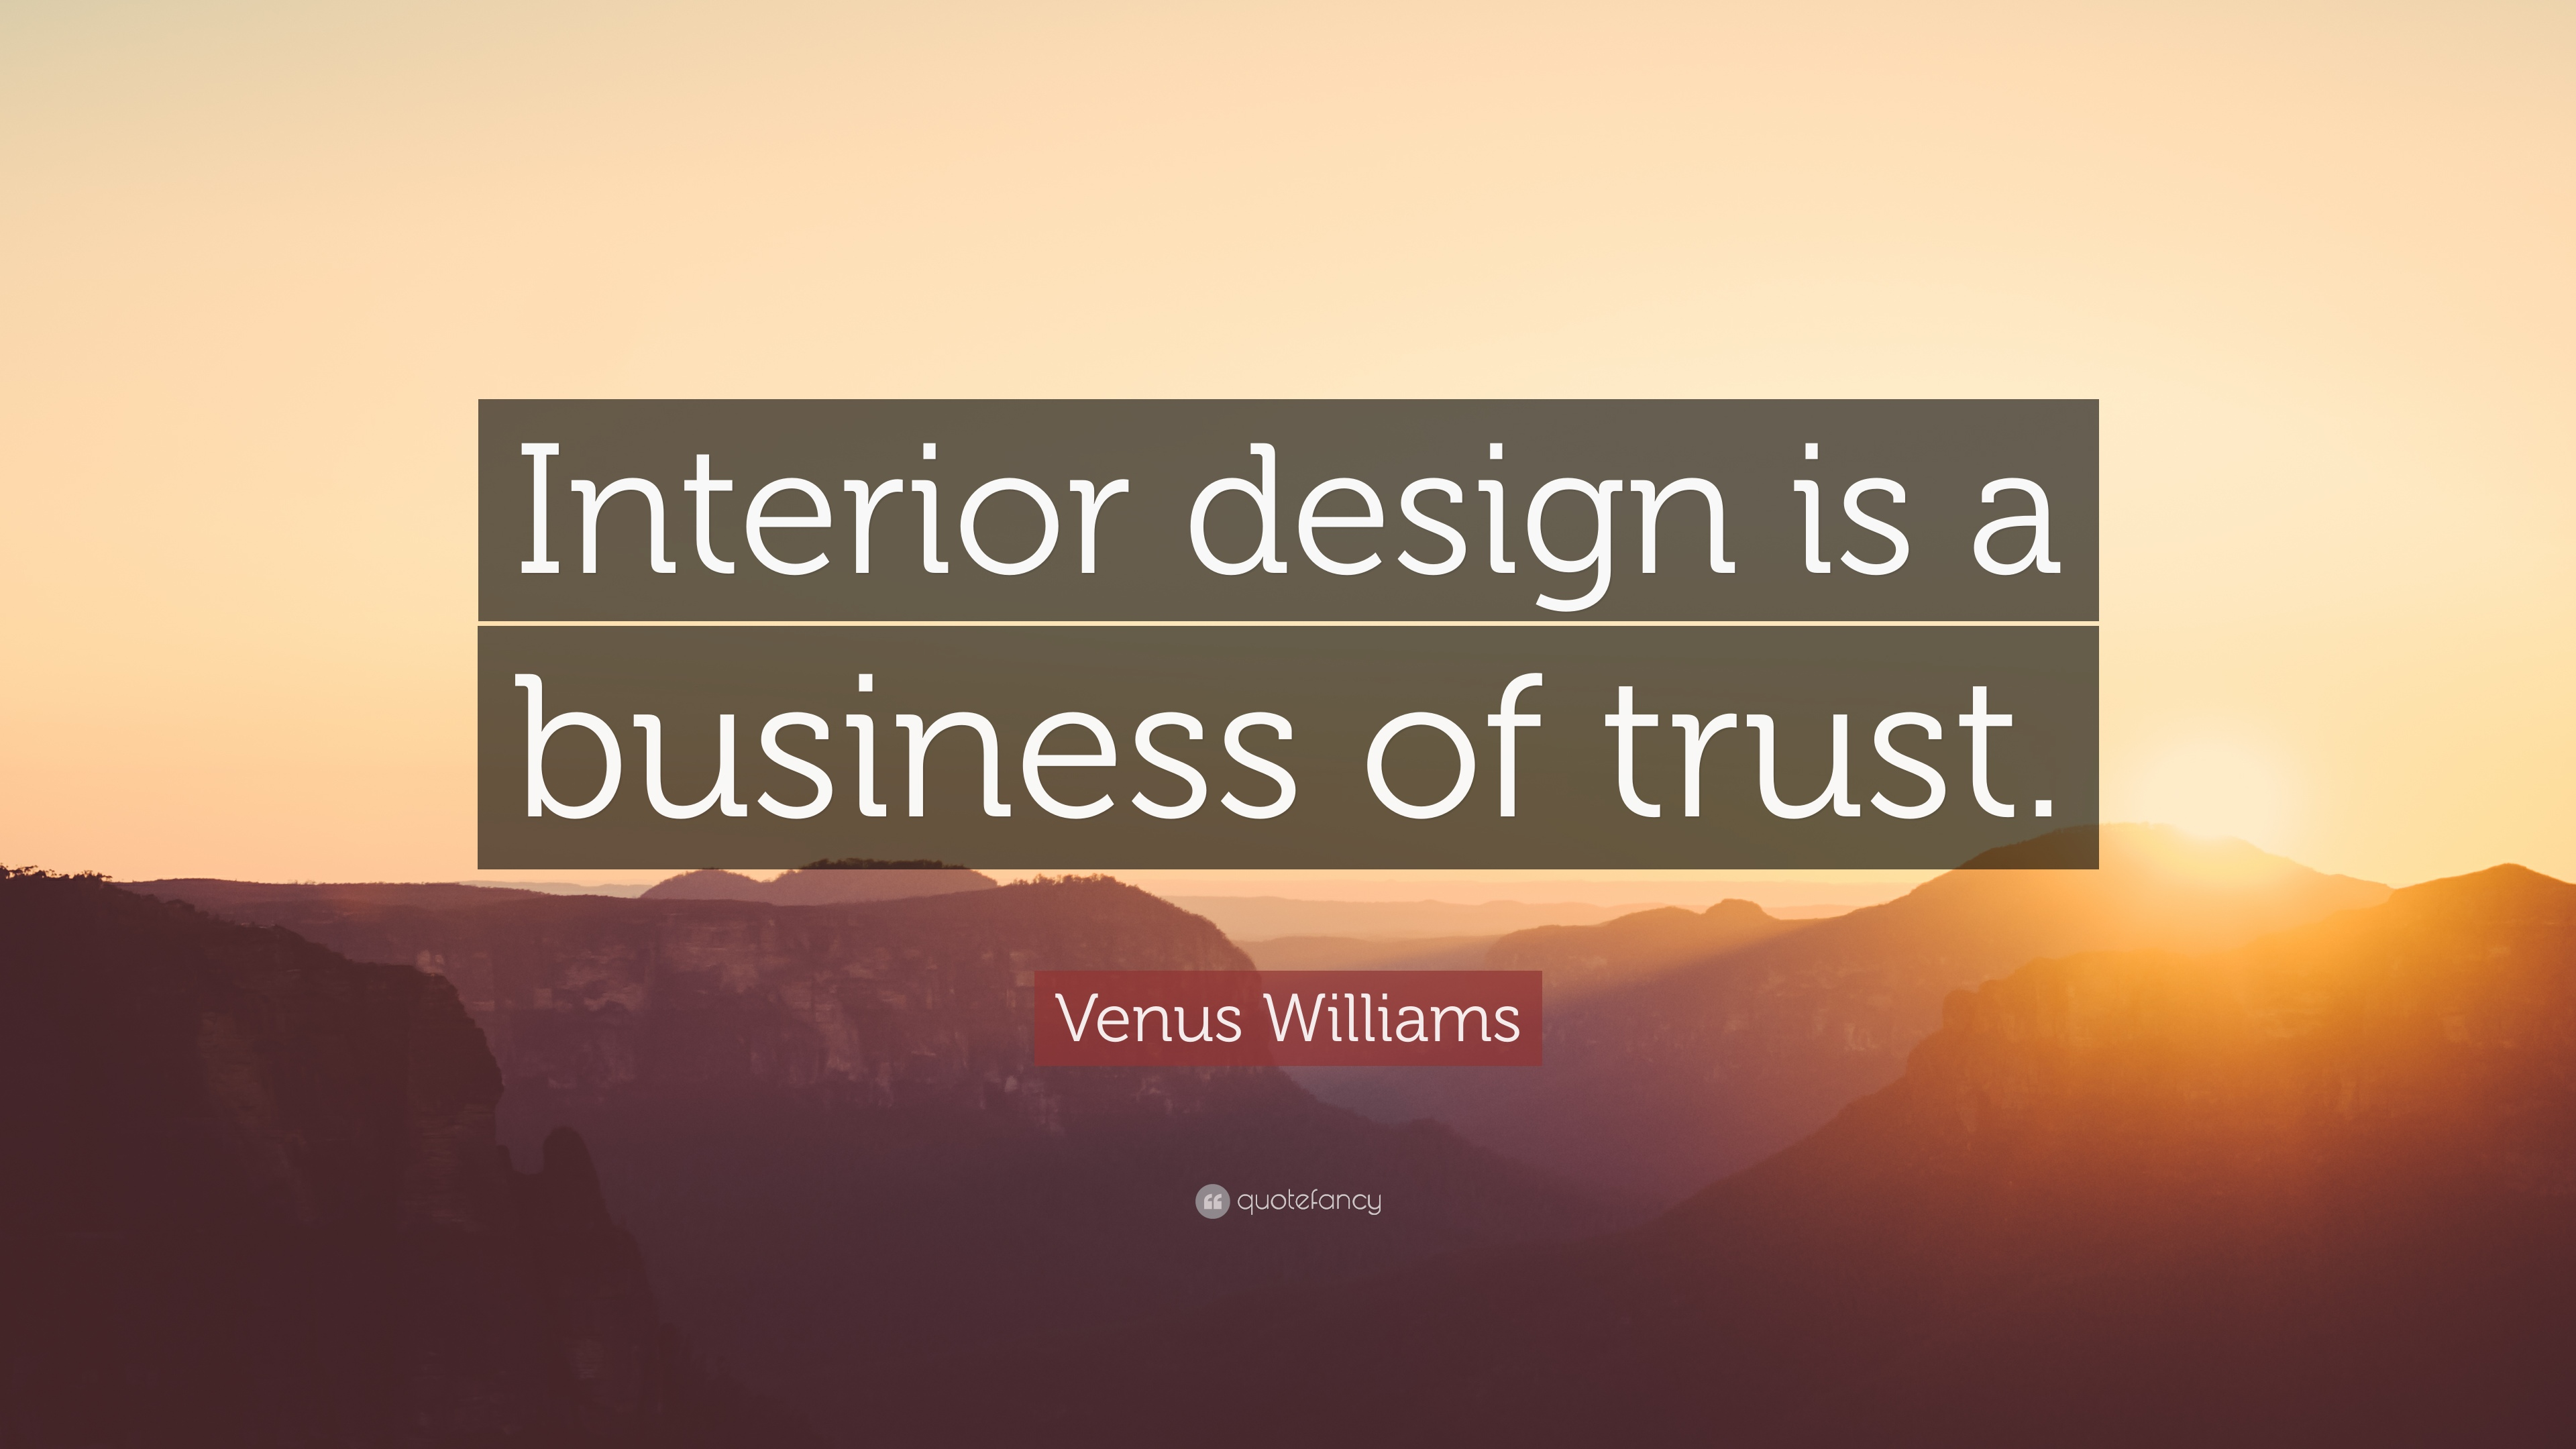 Venus williams quote interior design is a business of trust